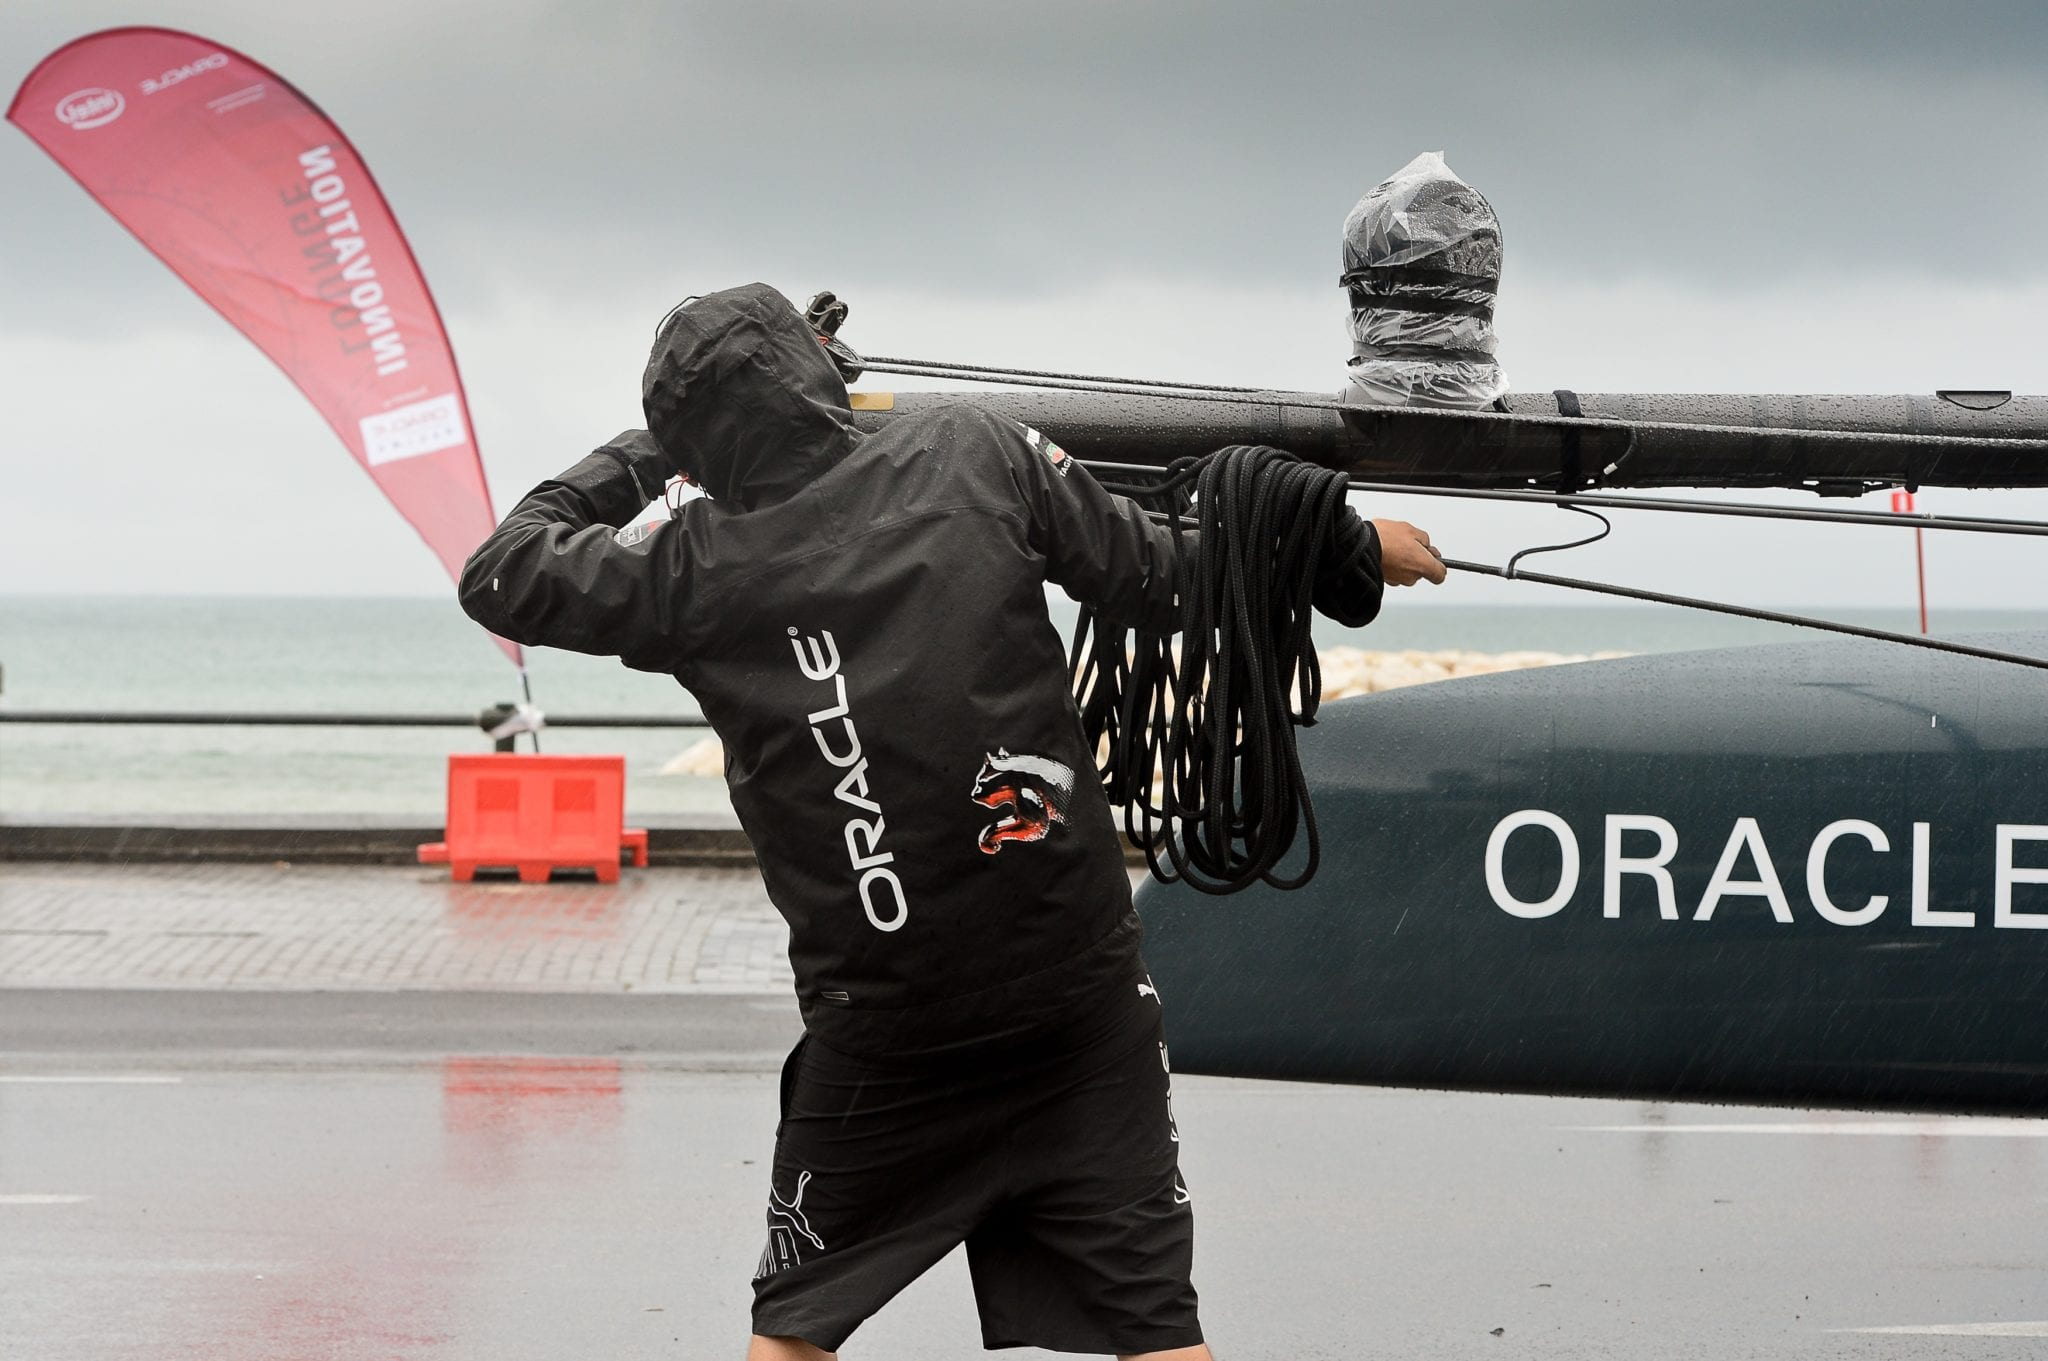 Oracle Racing team, America's Cup © ANDREAS SOLARO/Getty Images